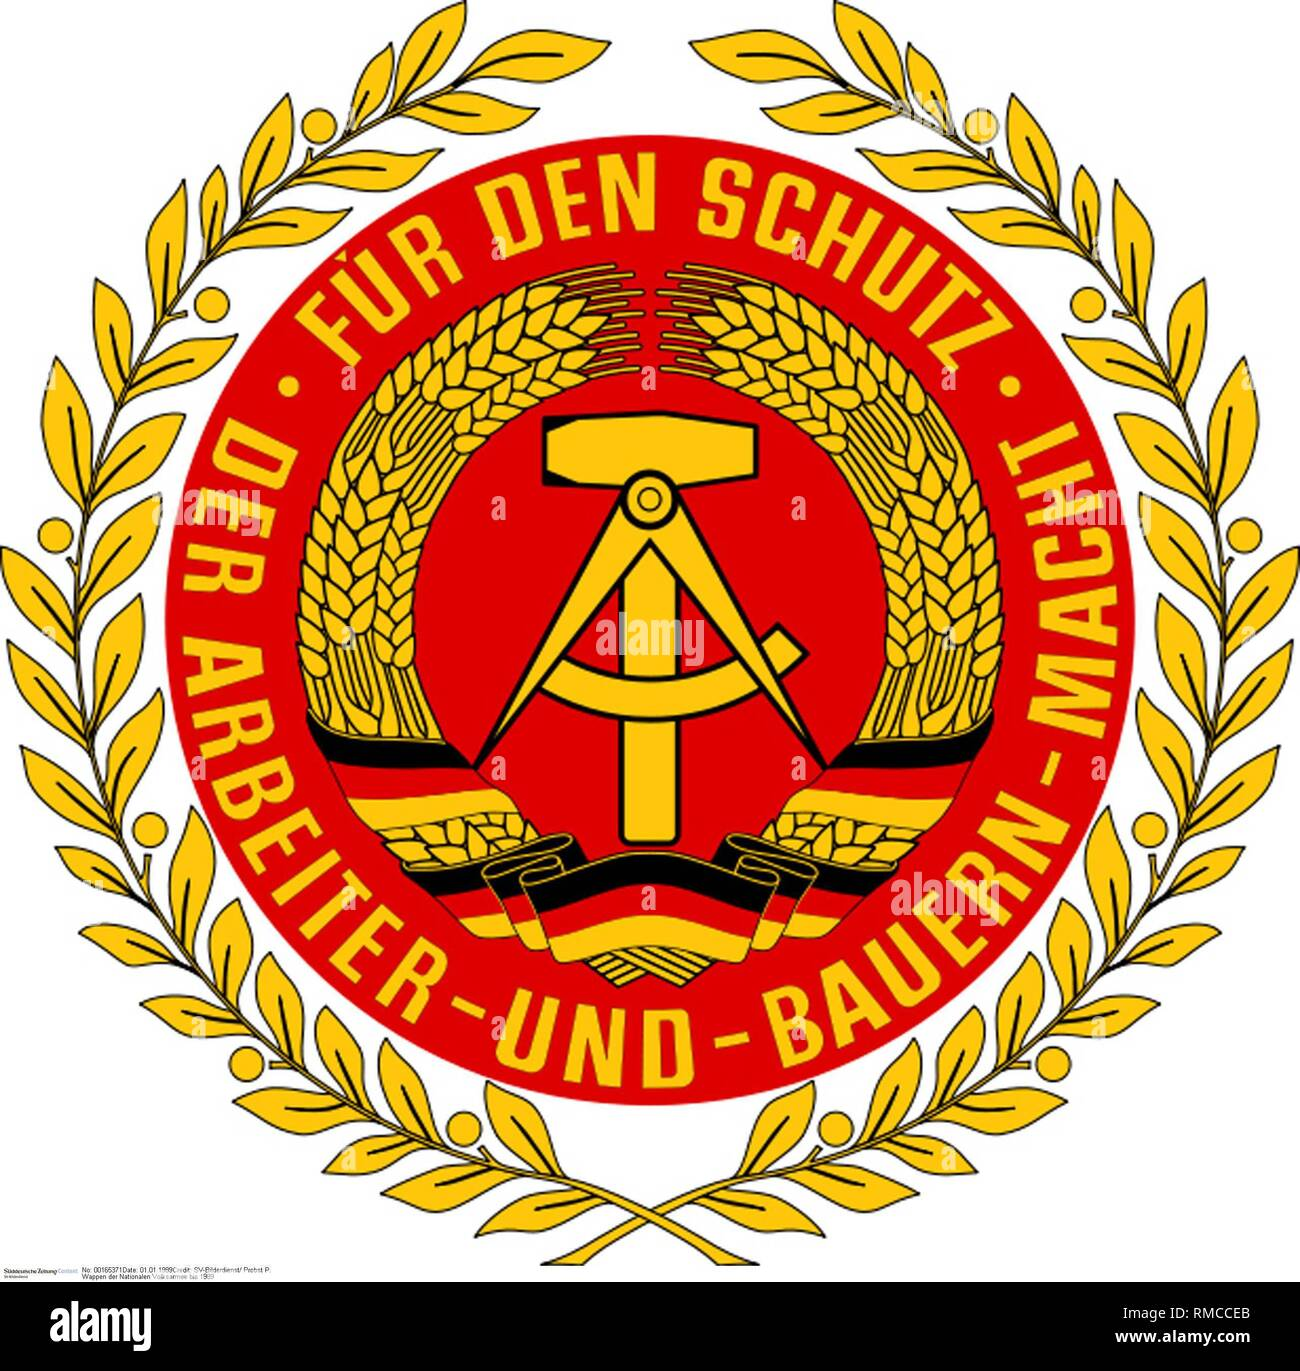 Coat of arms of the National People's Army of the GDR with the national coat of arms of the GDR in the middle. Photo from 1989. - Stock Image